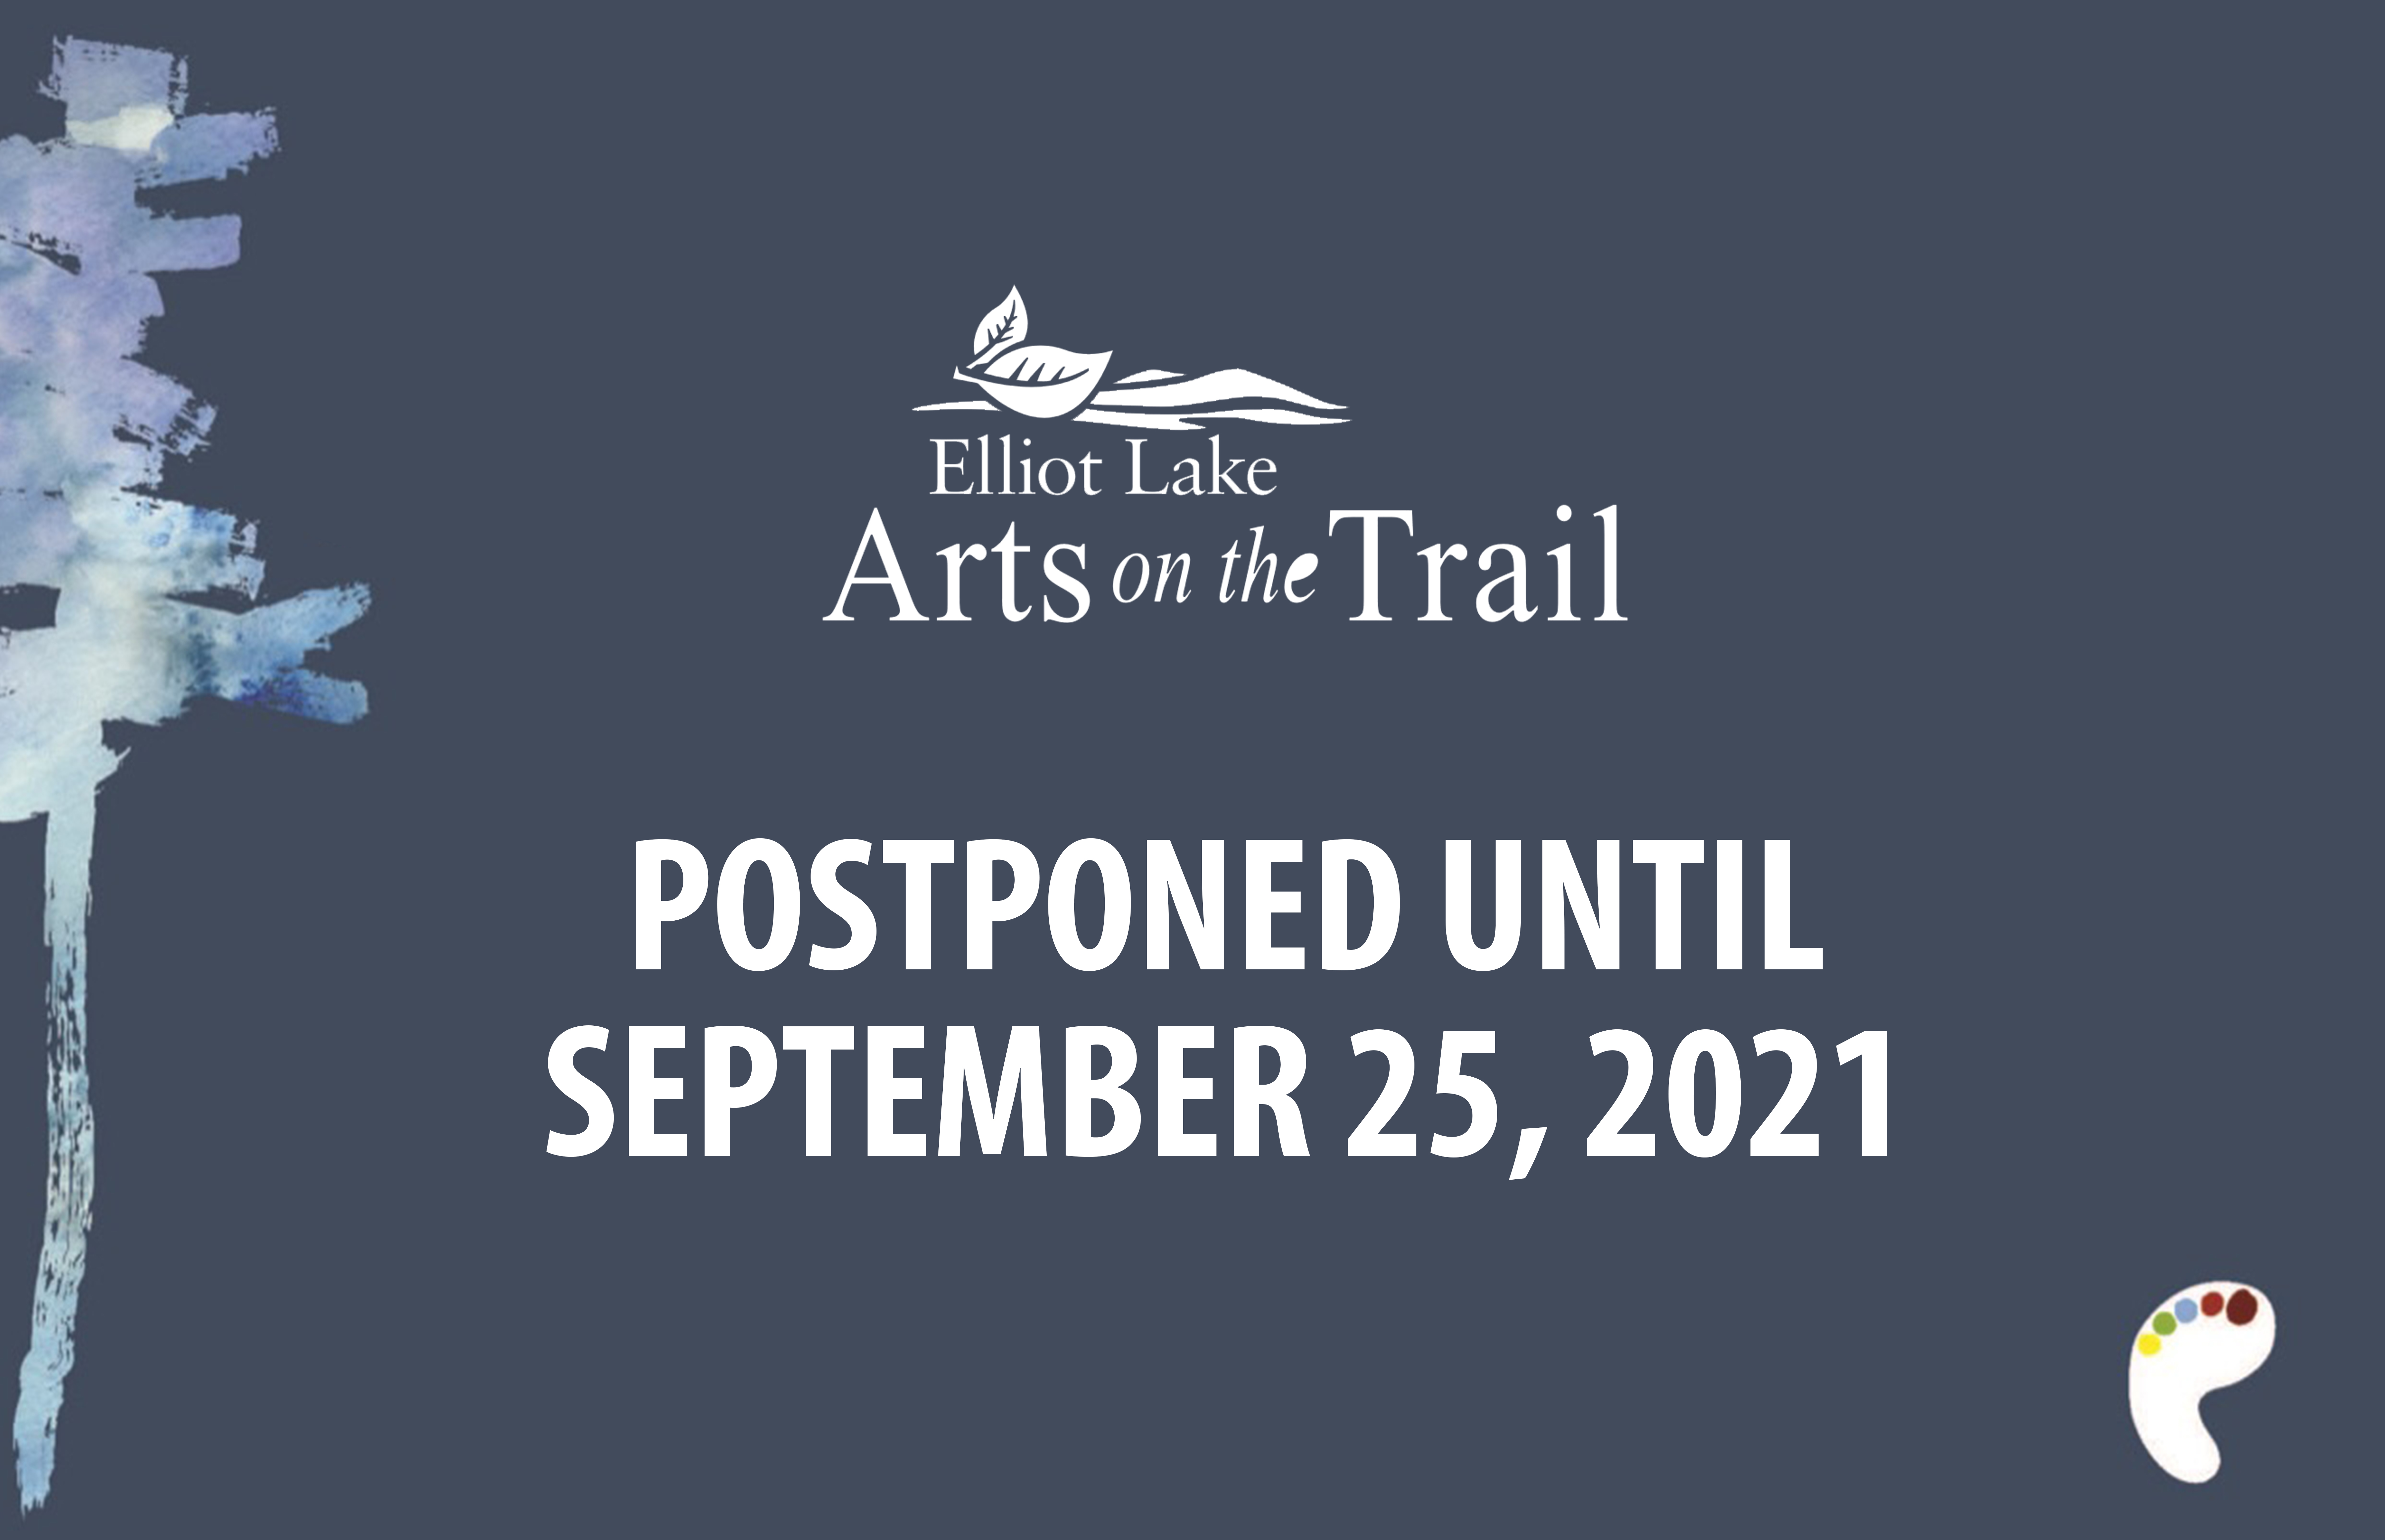 Arts on the trail postponed poster